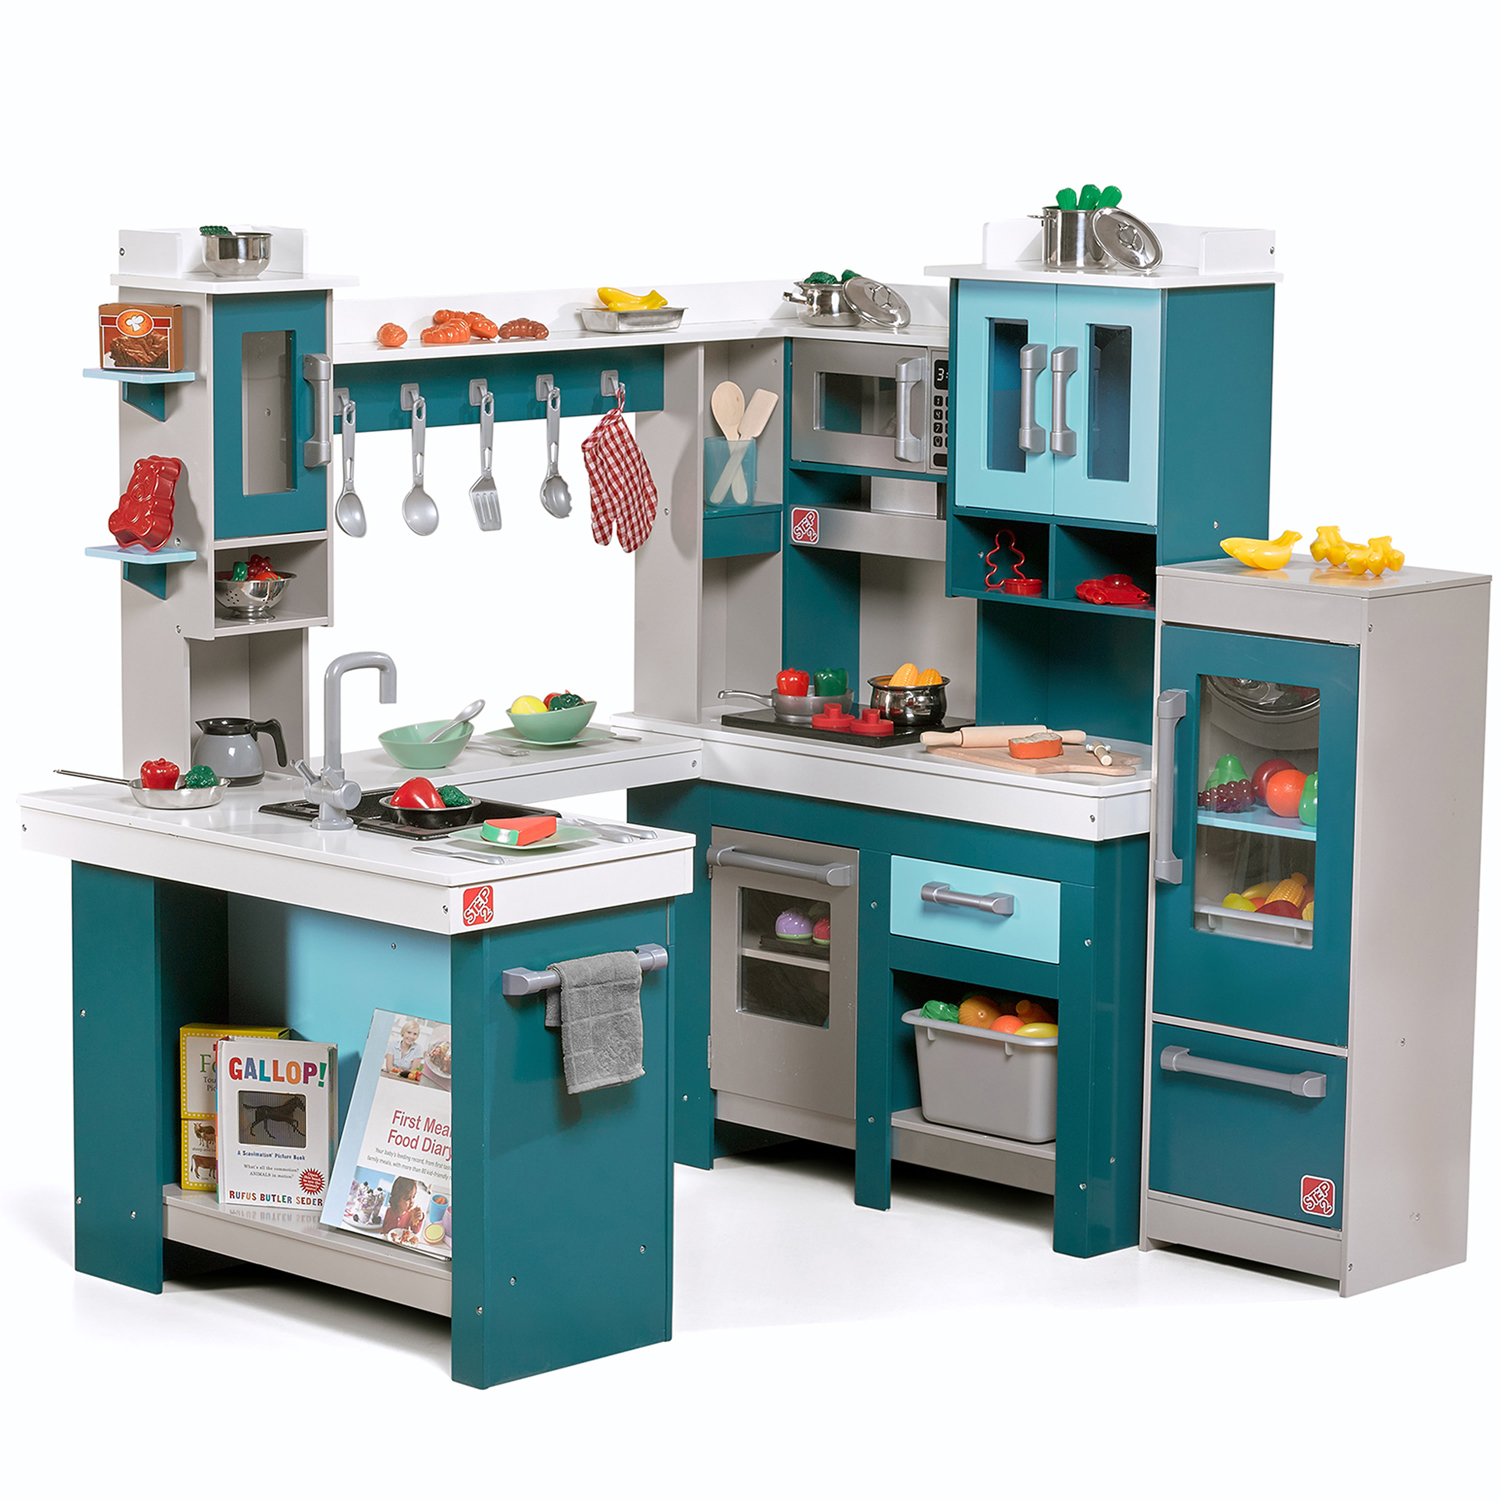 Step2 Grand Walk-In Wood Kitchen Play Area with 15 Piece Accessory Set by Step2